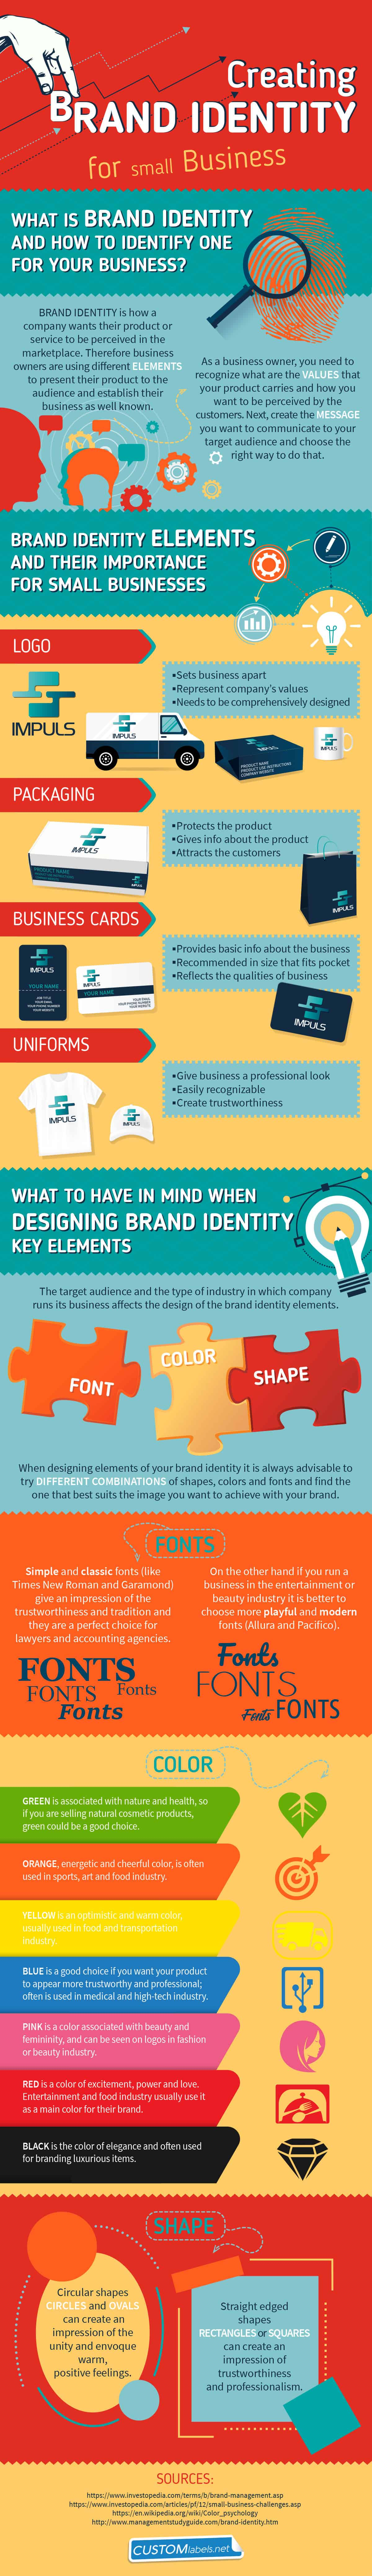 Brand Identity for Small Business Infographic